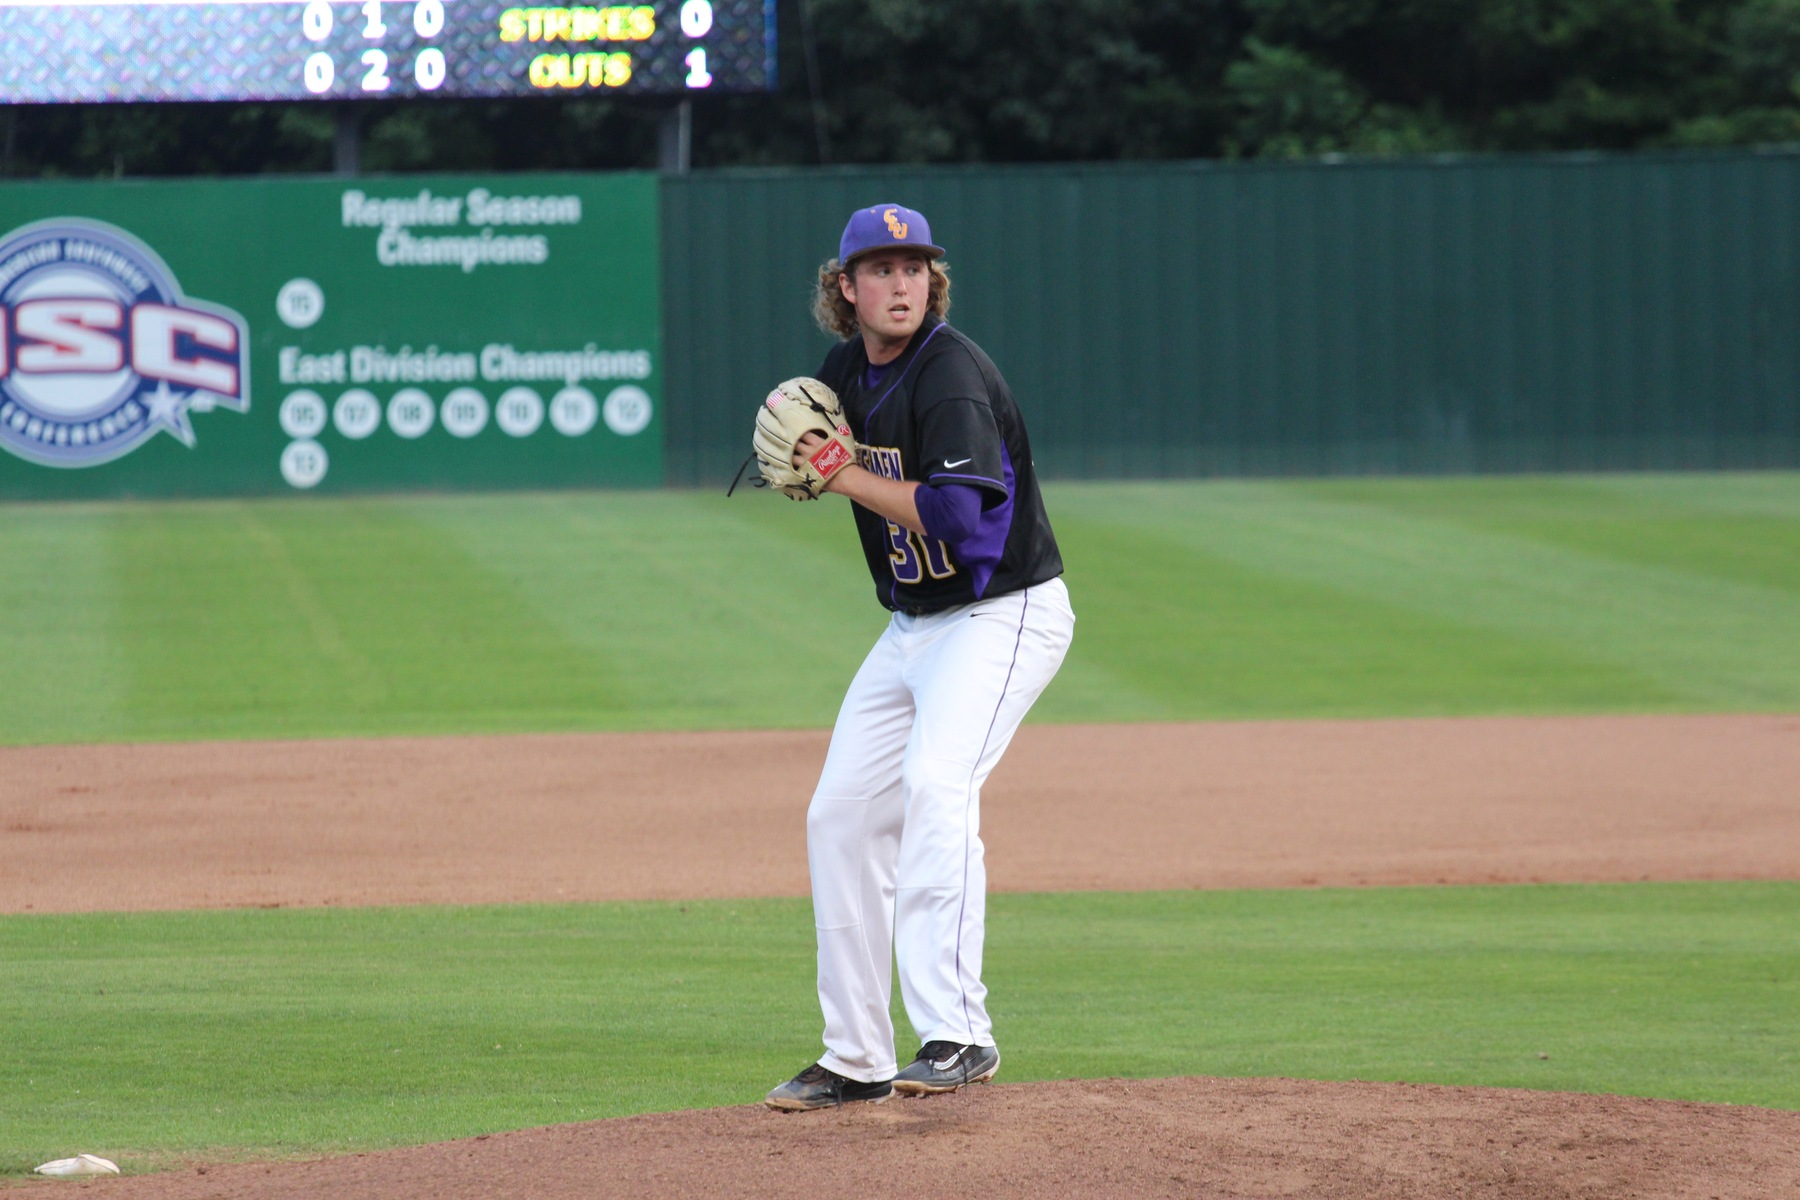 Kingsmen Fall to Wildcats on Opening Day